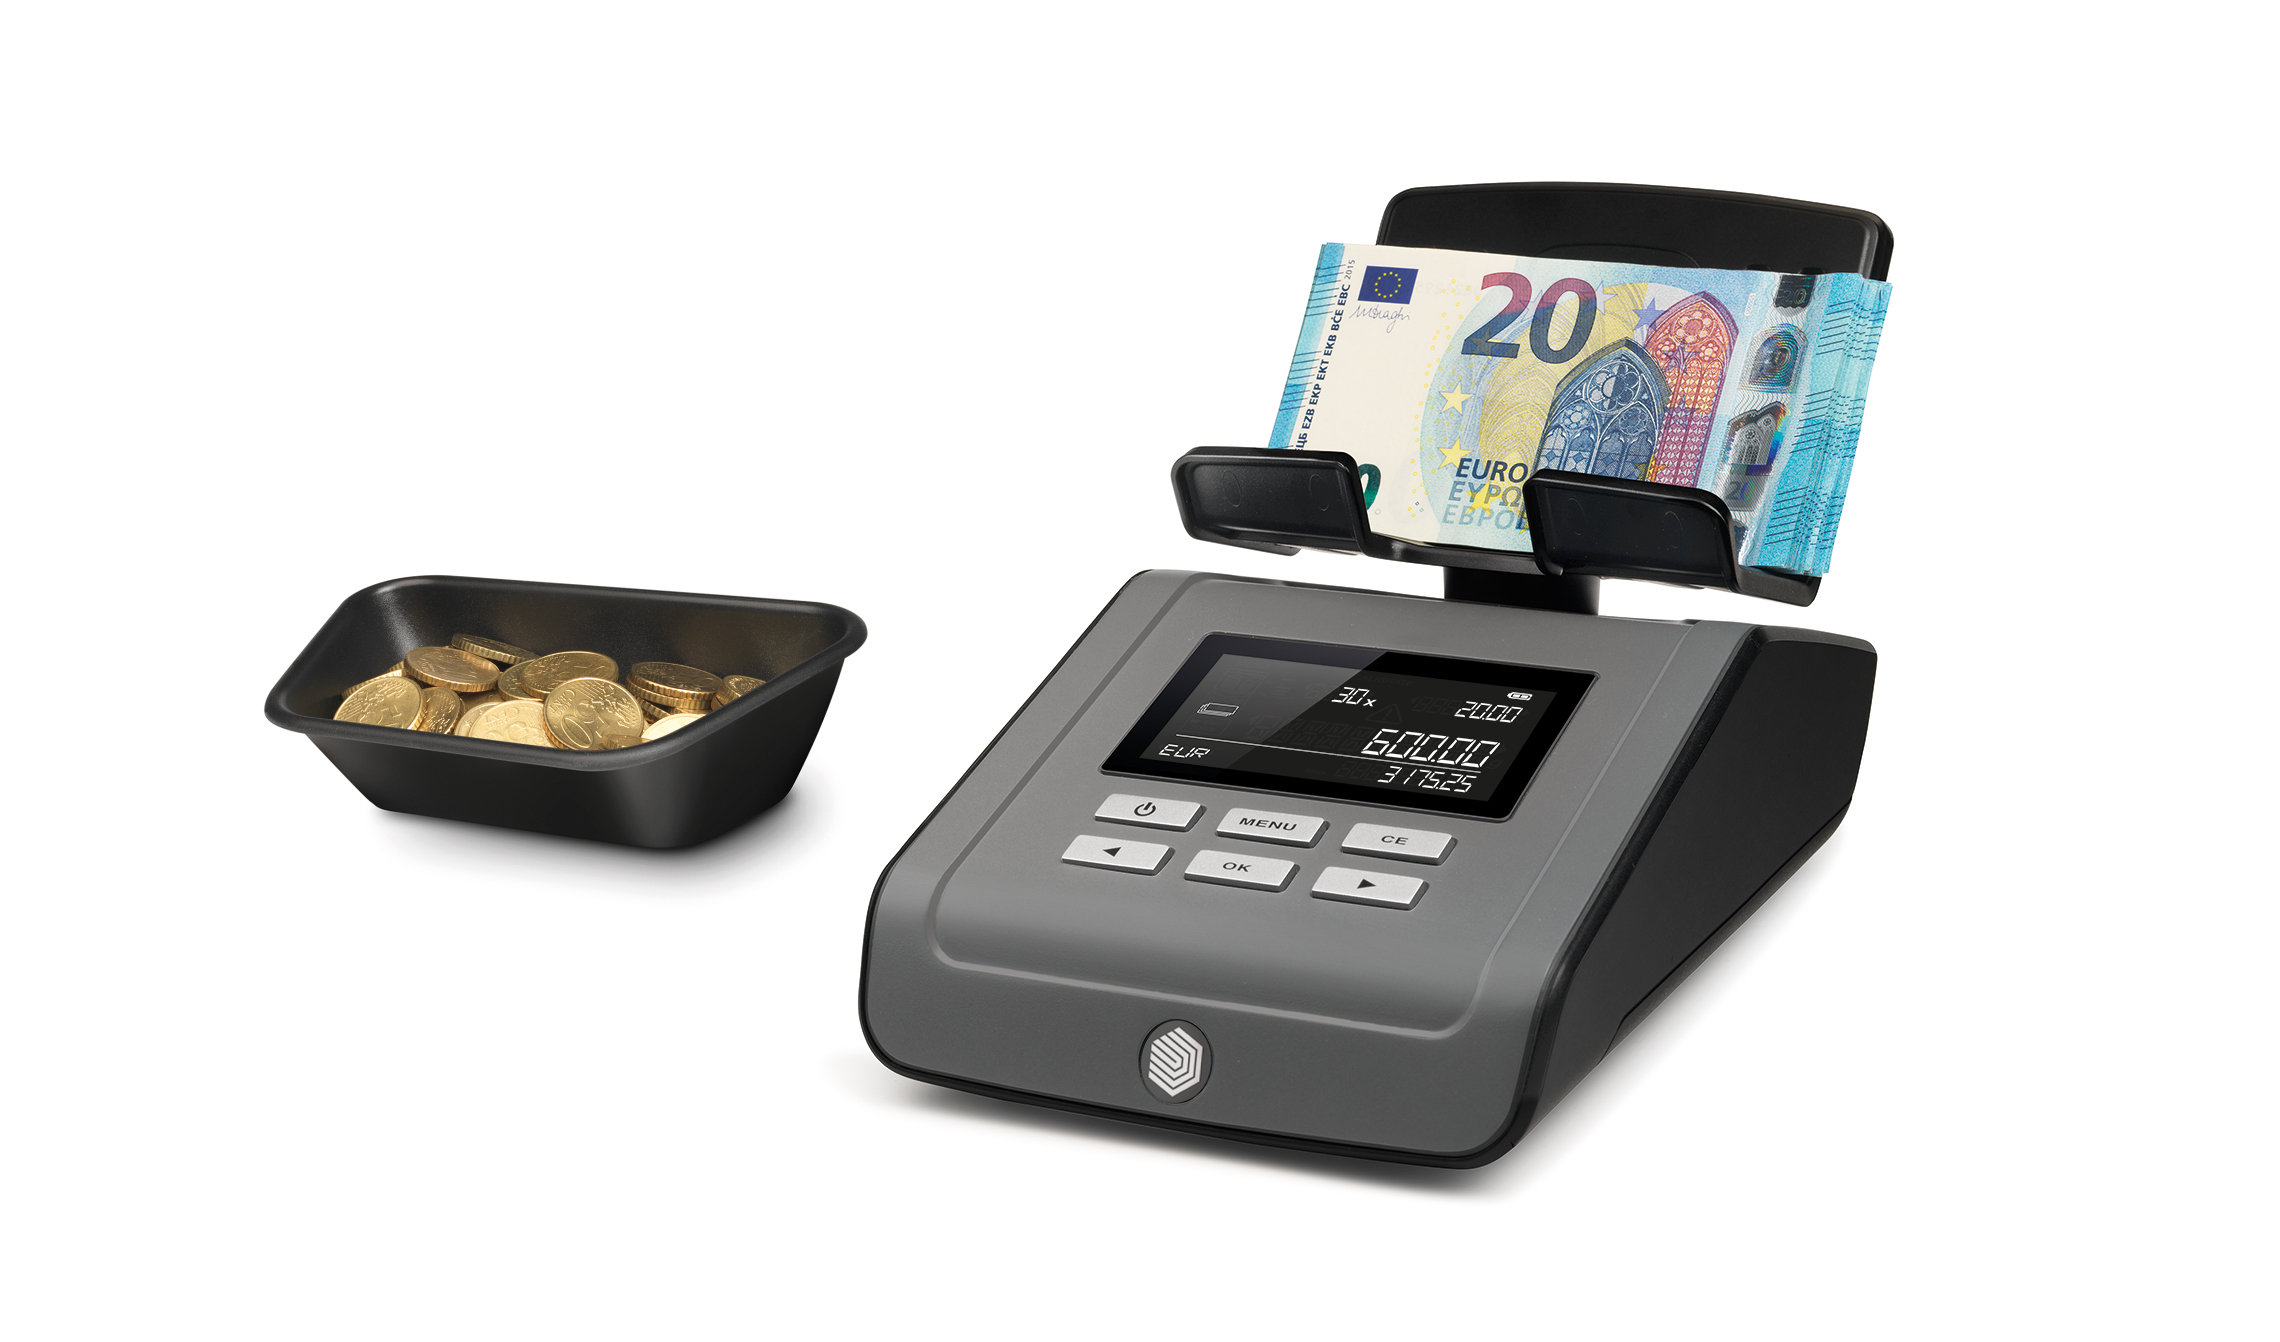 Image for Safescan 6165 Money Counting Scale Ref 131-0573